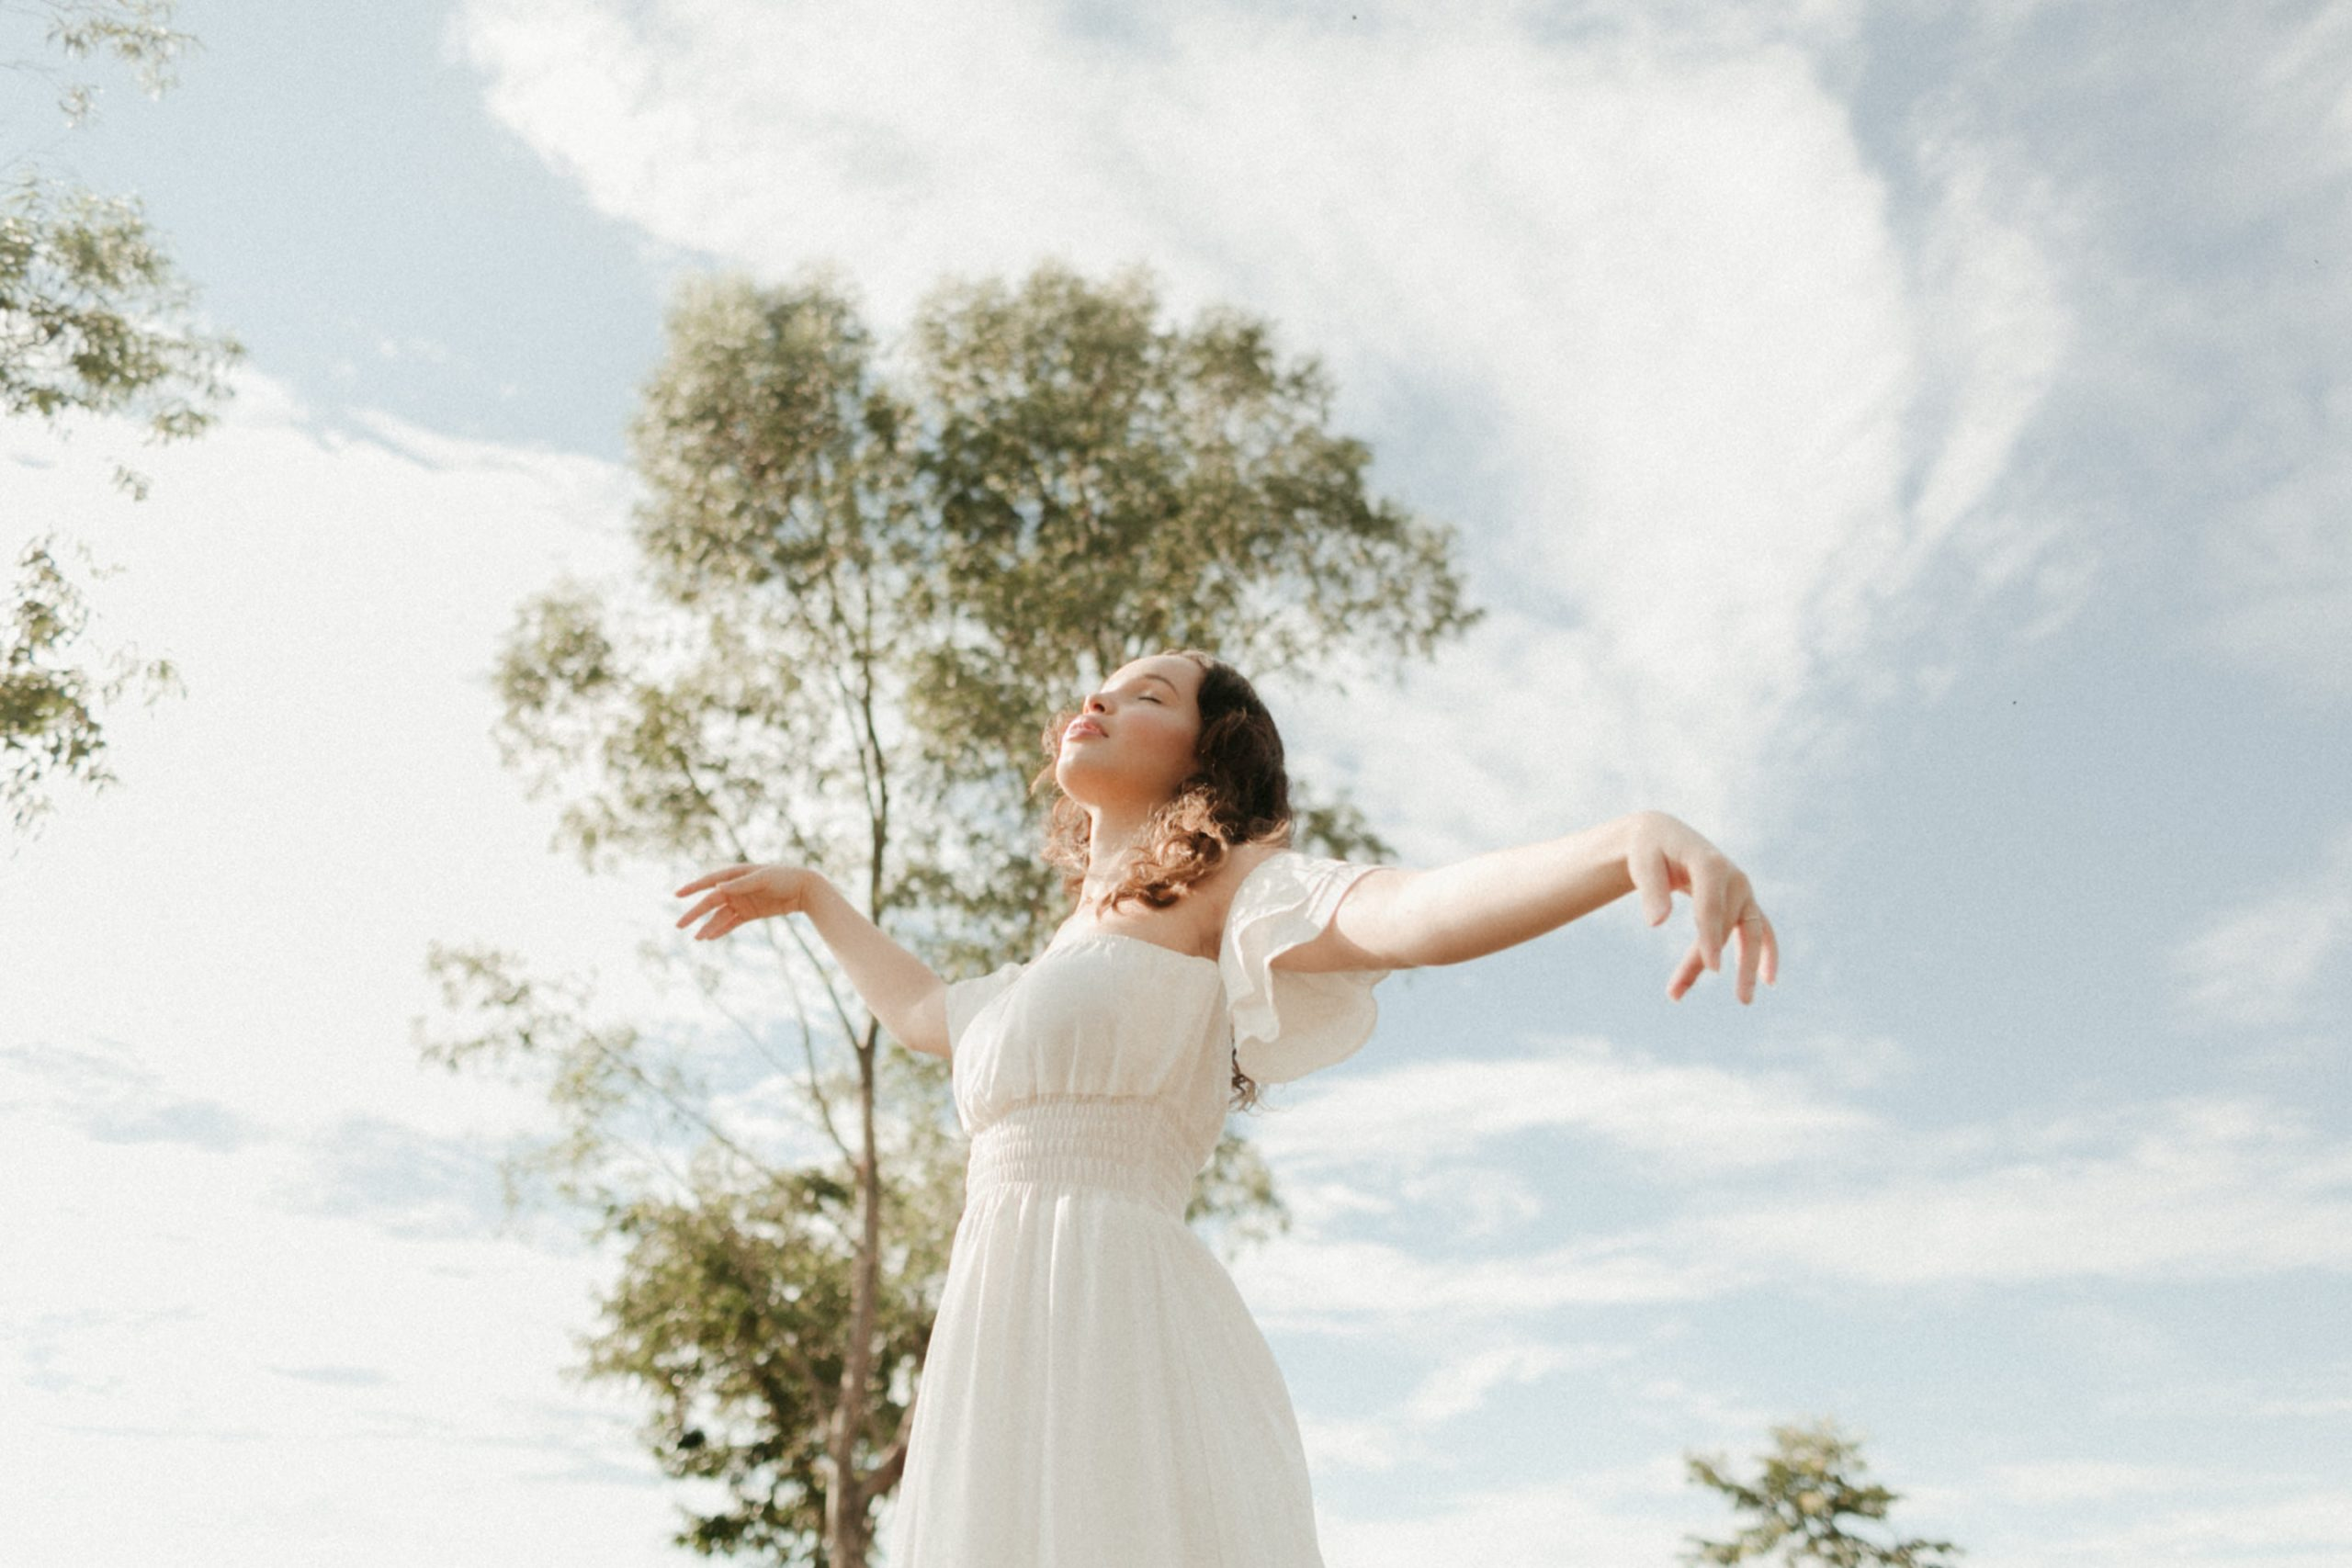 woman in white dress standing and raising her hands